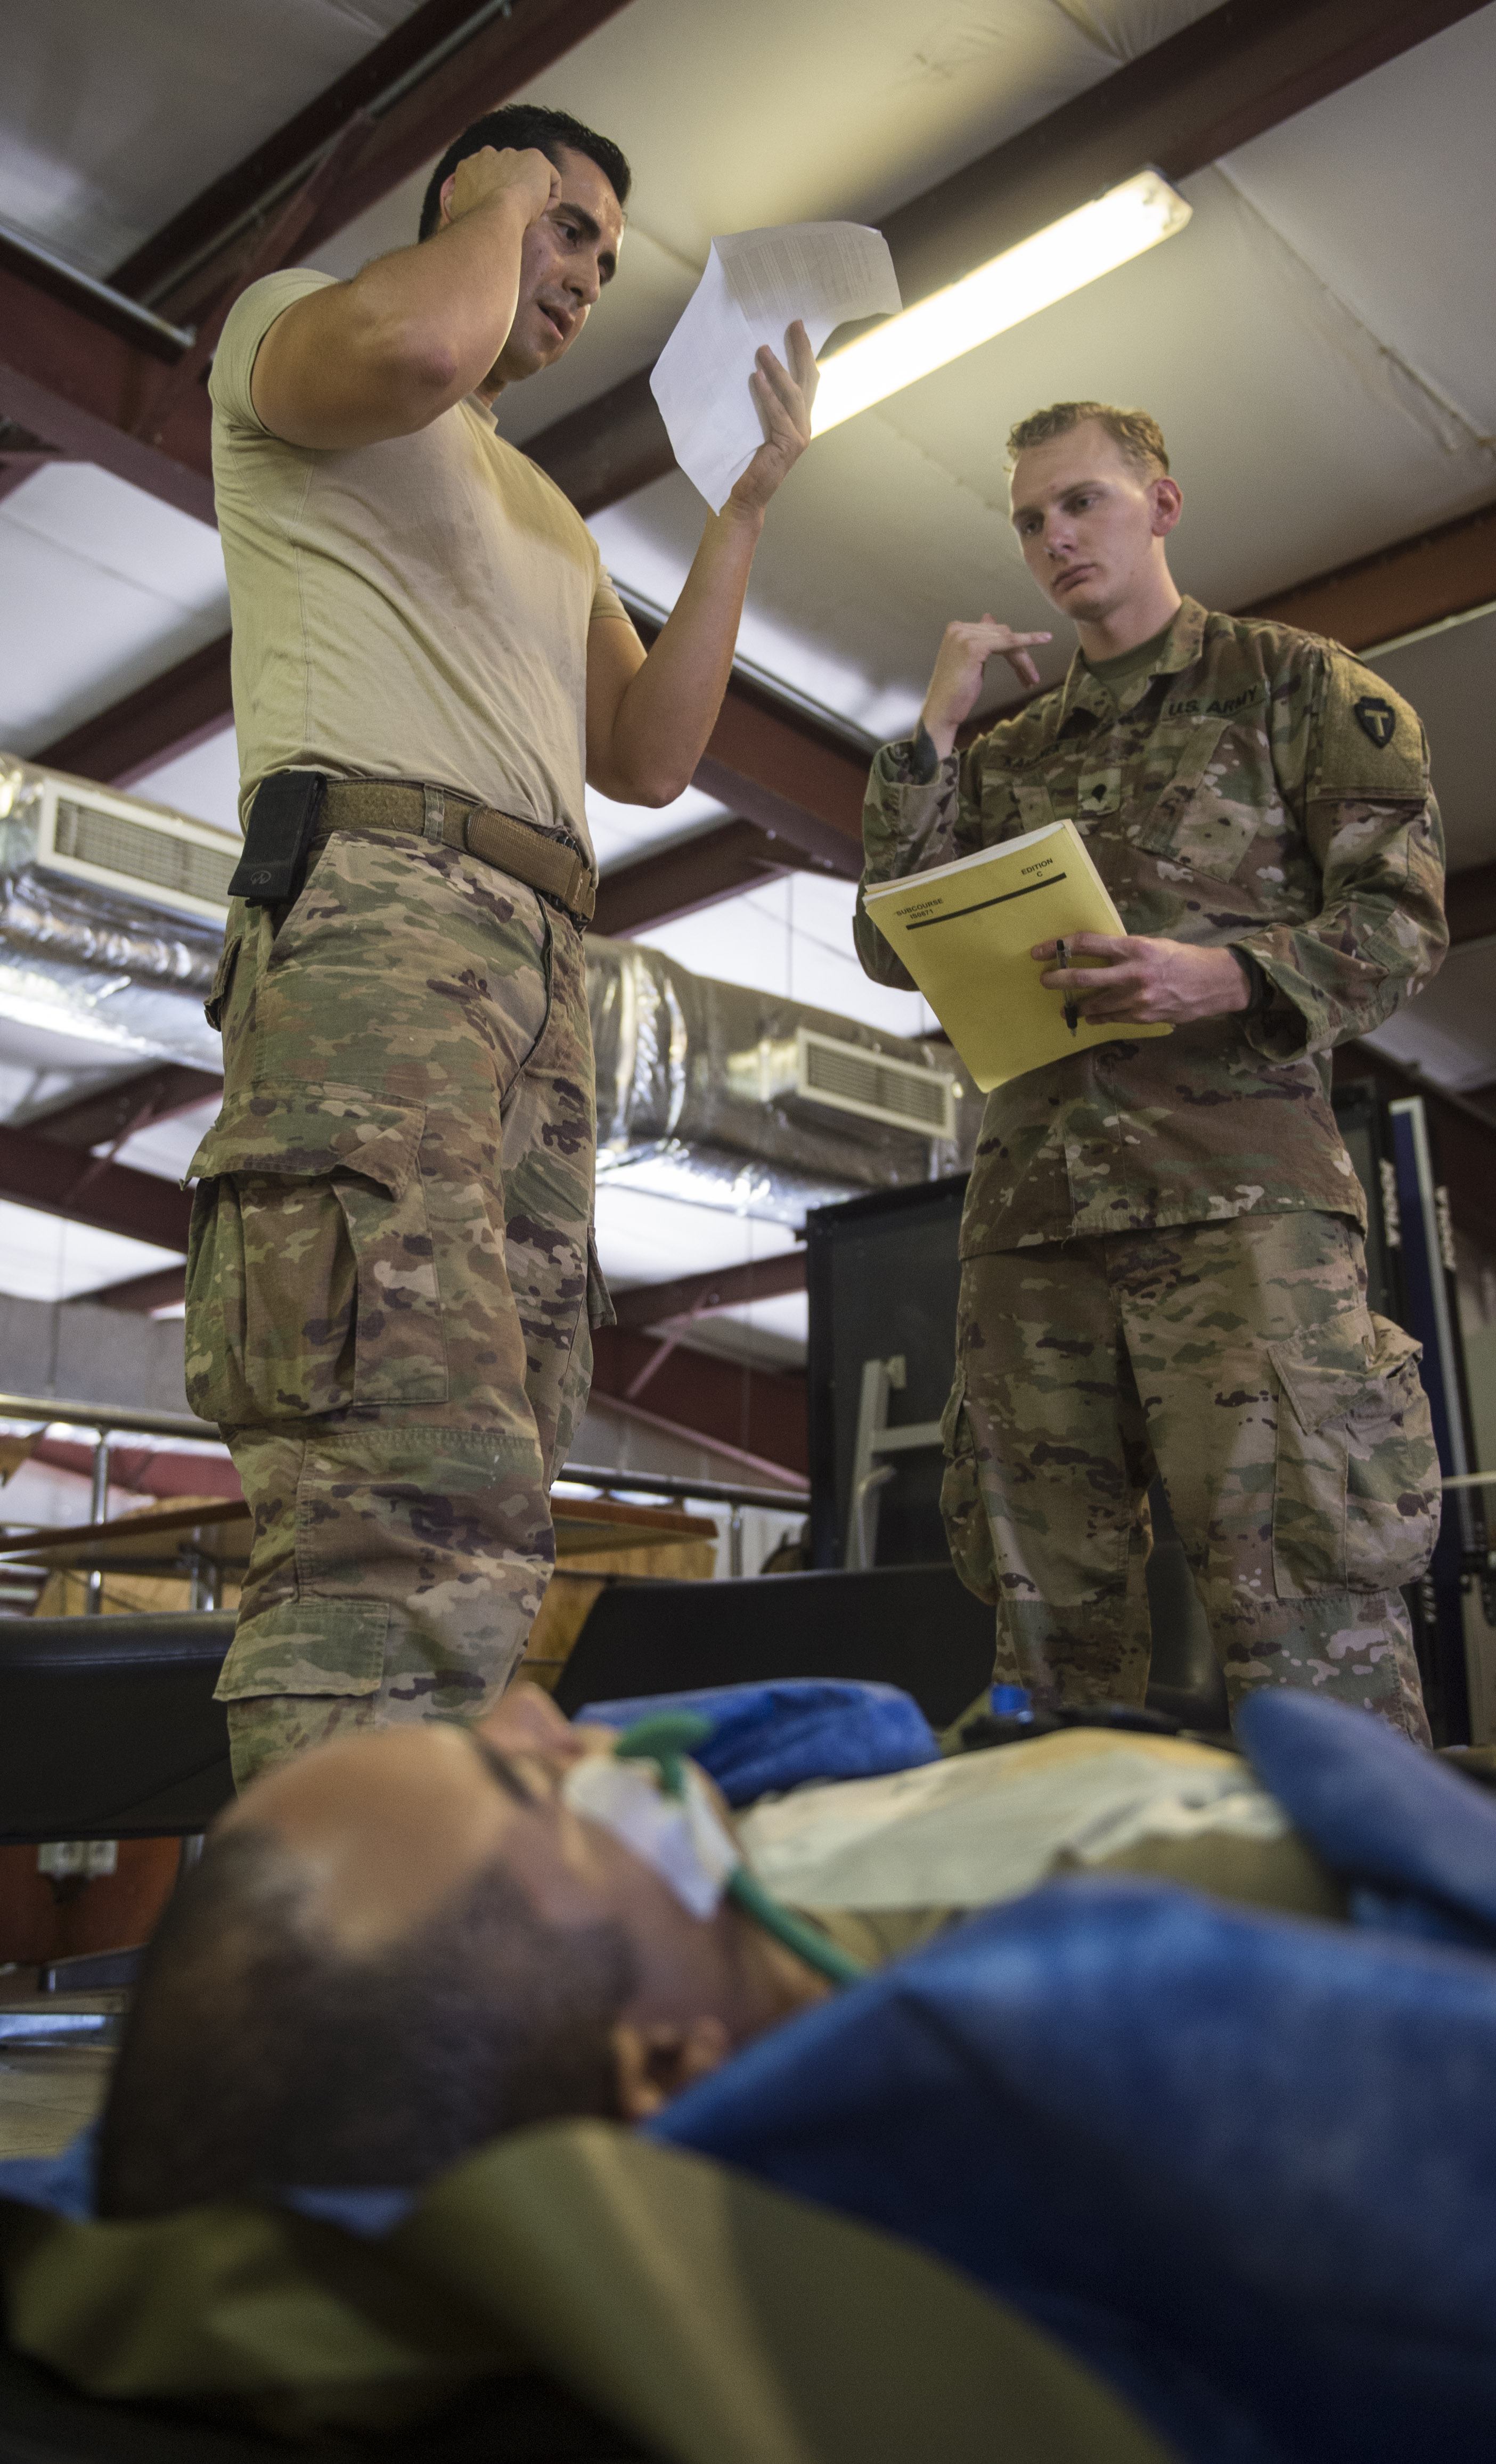 U.S. Air Force Staff Sgt. Julio Rojas (left), assigned to the 870th Aeromedical Evacuation Squadron, simulates calling for a medical evacuation as U.S. Army Spc. Alexander Kahanek, an instructor assigned to the 3rd Battalion, 144th Infantry Regiment Task Force Bayonet, attached to the Combined Joint Task Force – Horn of Africa, observes the final assessment of a U.S. Army Combat Lifesaver Course held at Camp Lemonnier, Djibouti, Dec. 1, 2017. The five-day course focused on teaching students how to administer lifesaving tactical medical care to wounded service members on the battlefield. (U.S. Air Force photo by Staff Sgt. Timothy Moore)